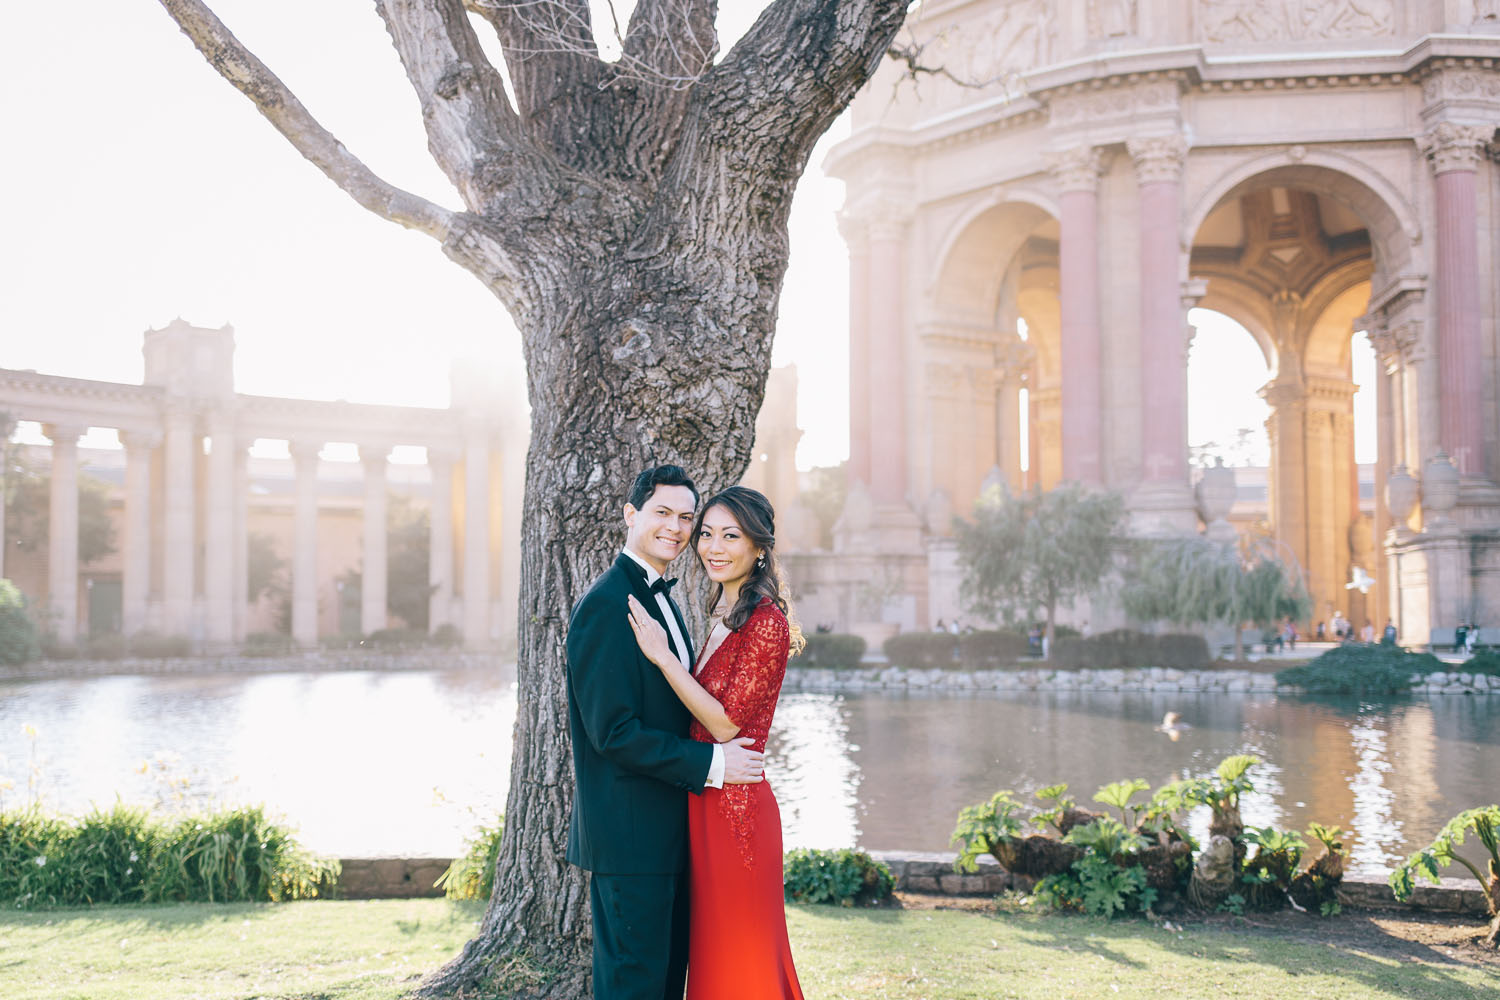 Engagement-Wedding-Photographer-San-Francisco-Engagement-session-Baker-Beach-Palace-of-Fine-Arts-and-Legion-of-Honor-byJBJ-Pictures-7.jpg